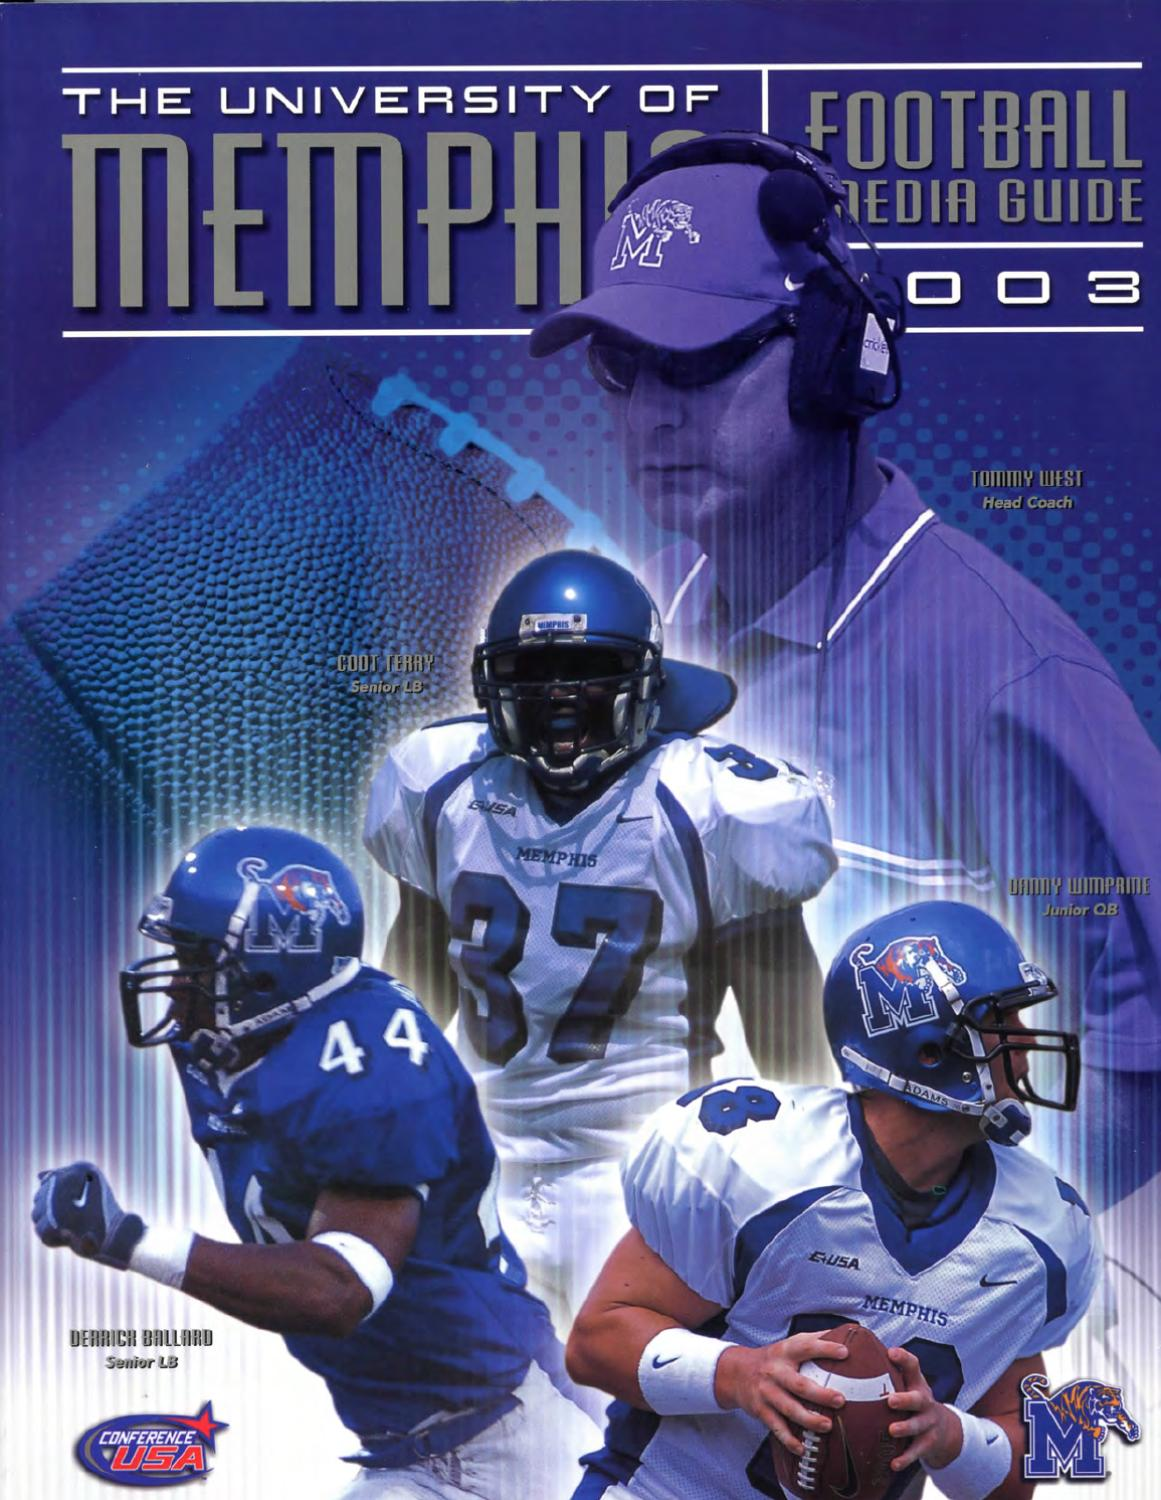 2003 Memphis Football Media Guide By University Of Memphis Athletic Media Relations Issuu